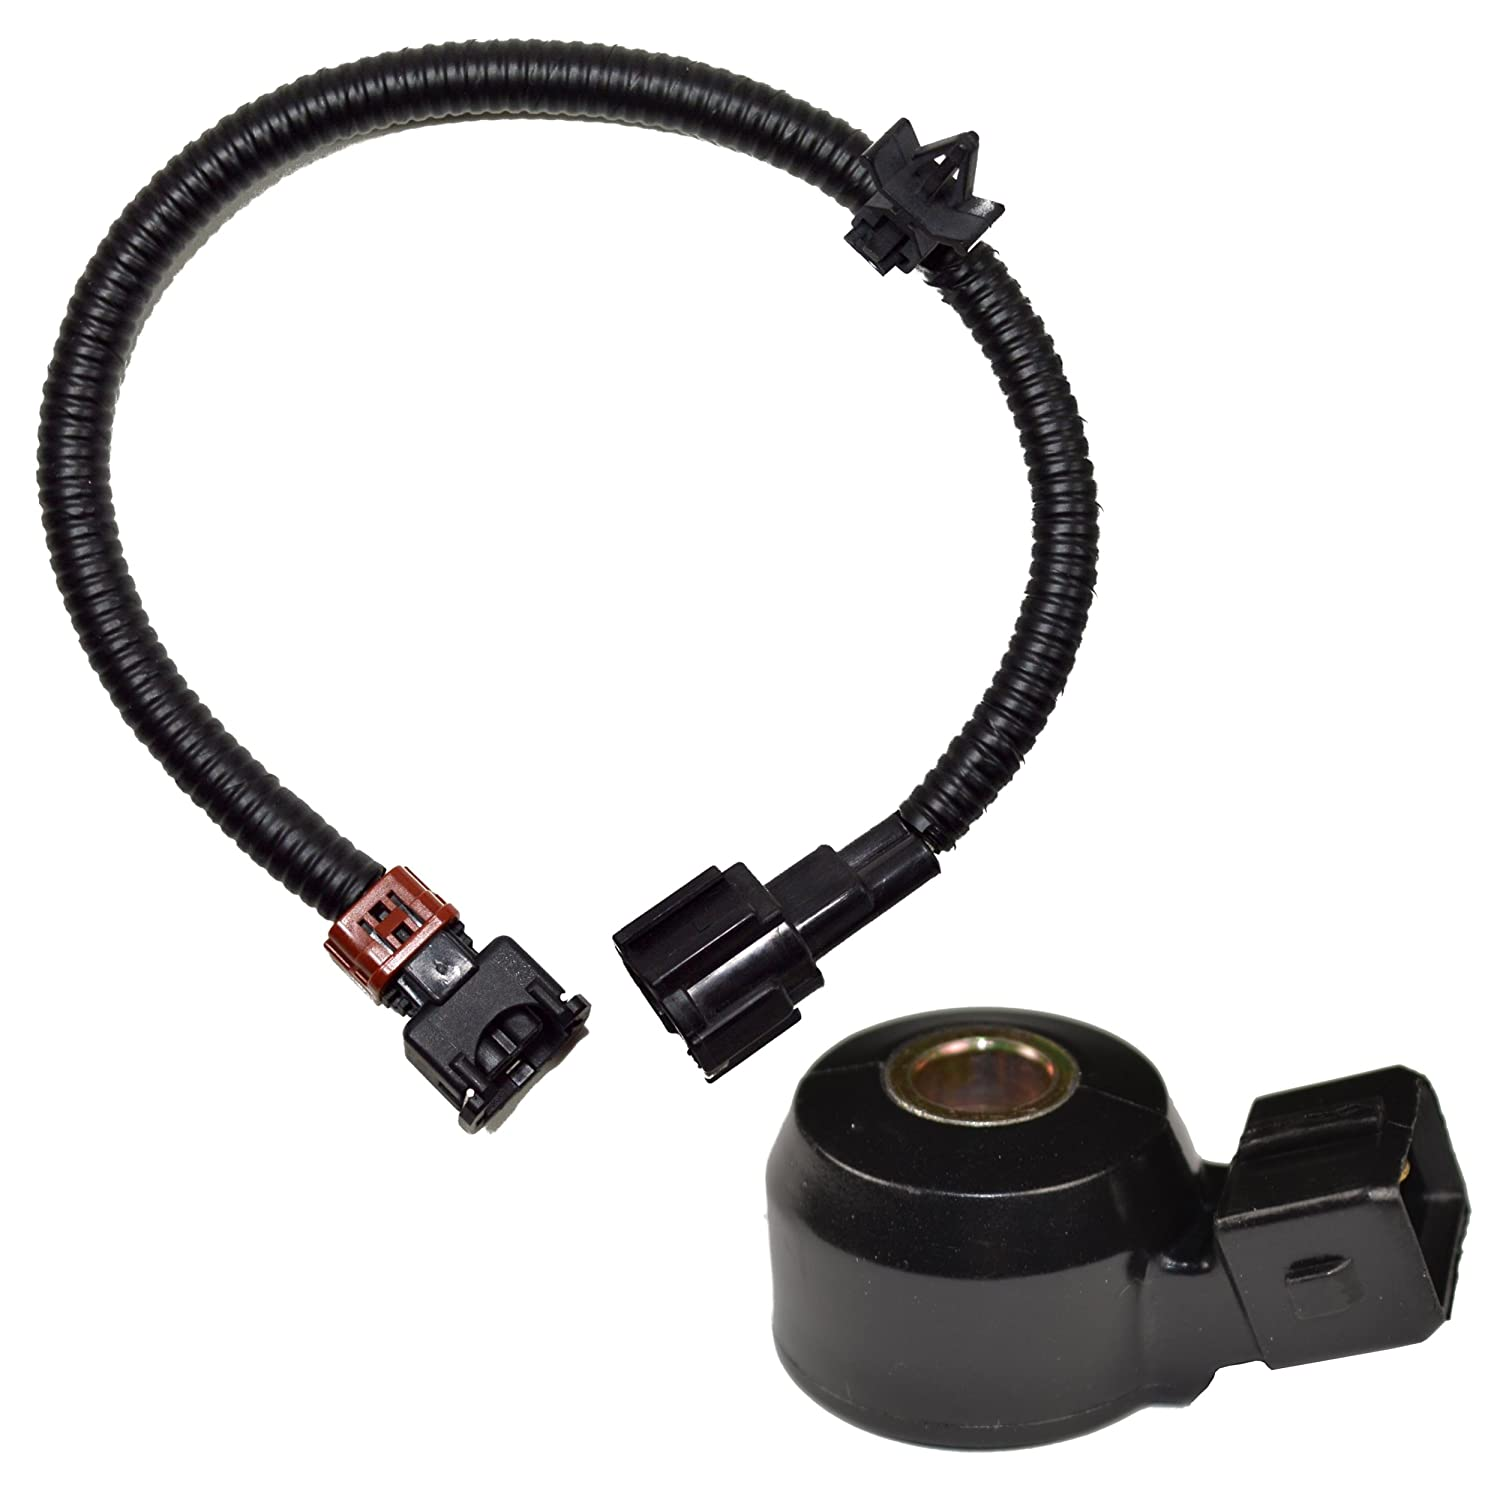 81eAZ58dHKL._SL1500_ amazon com hqrp knock sensor w wiring harness for nissan 99 pathfinder knock sensor harness at reclaimingppi.co